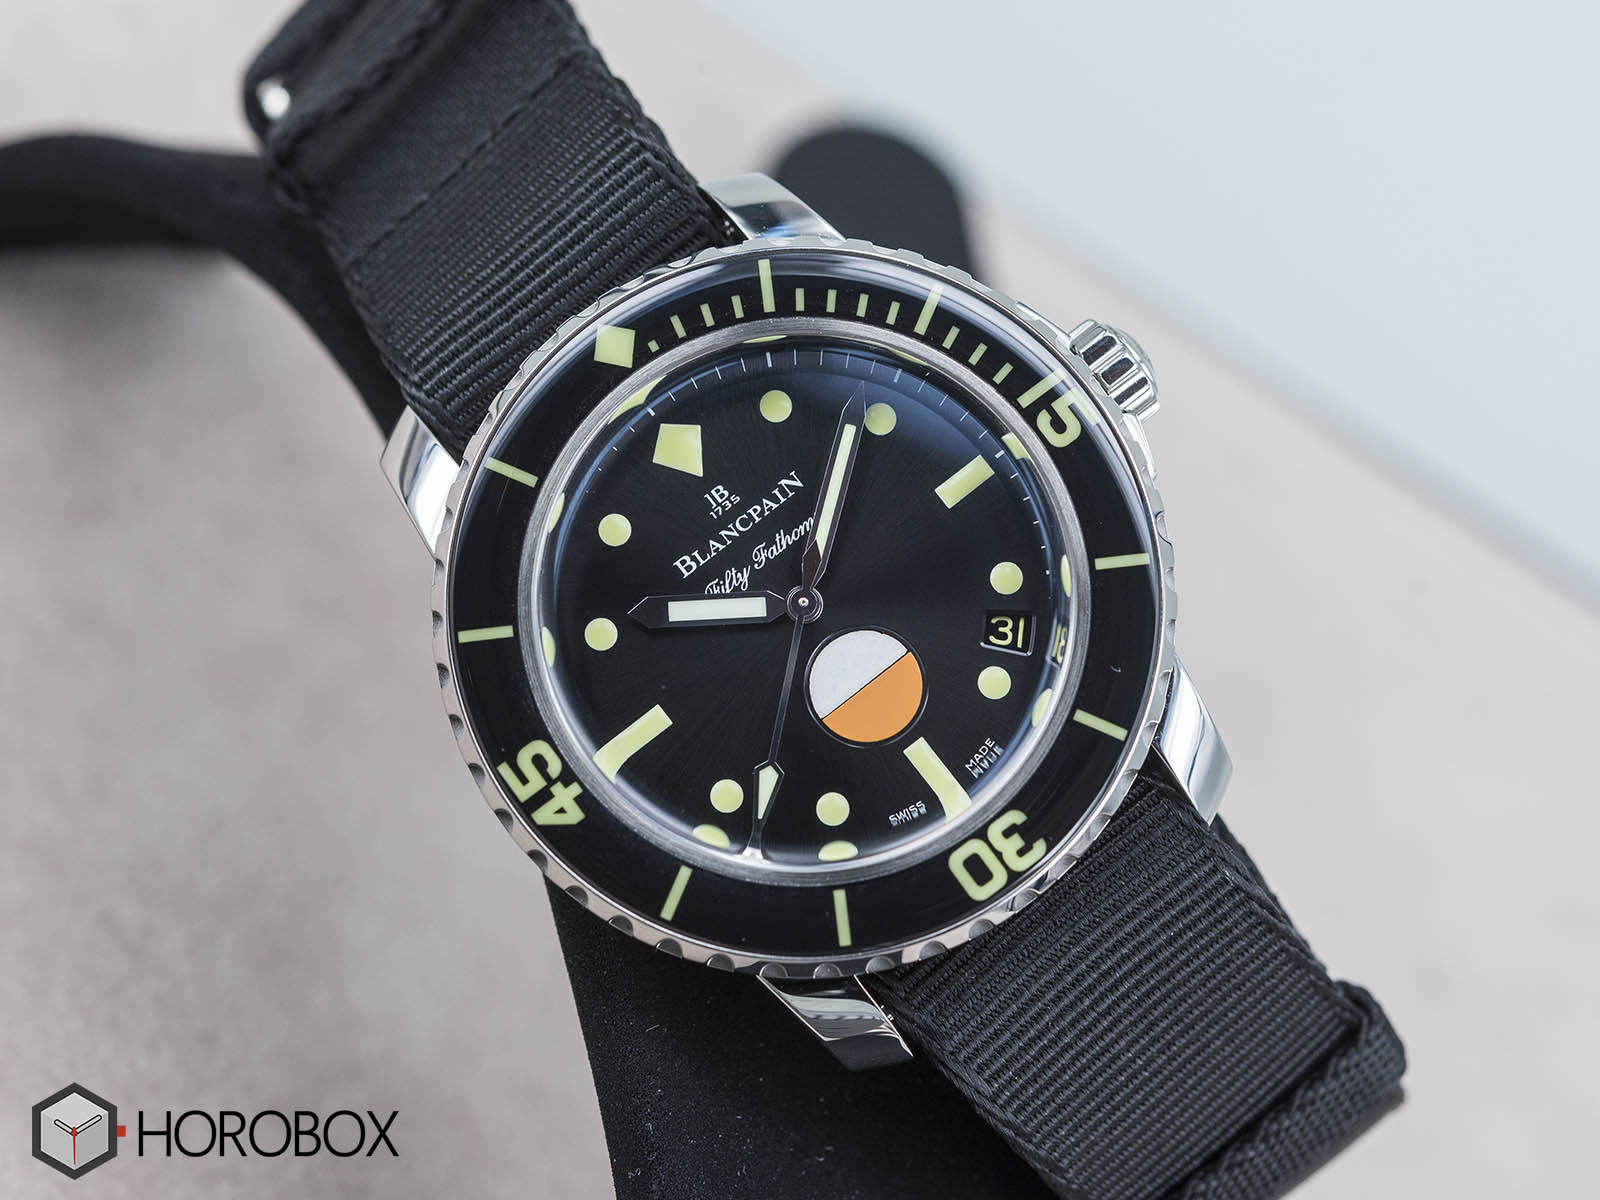 blancpain-tribute-to-fifty-fathoms-mil-spec-onlywatch.jpg